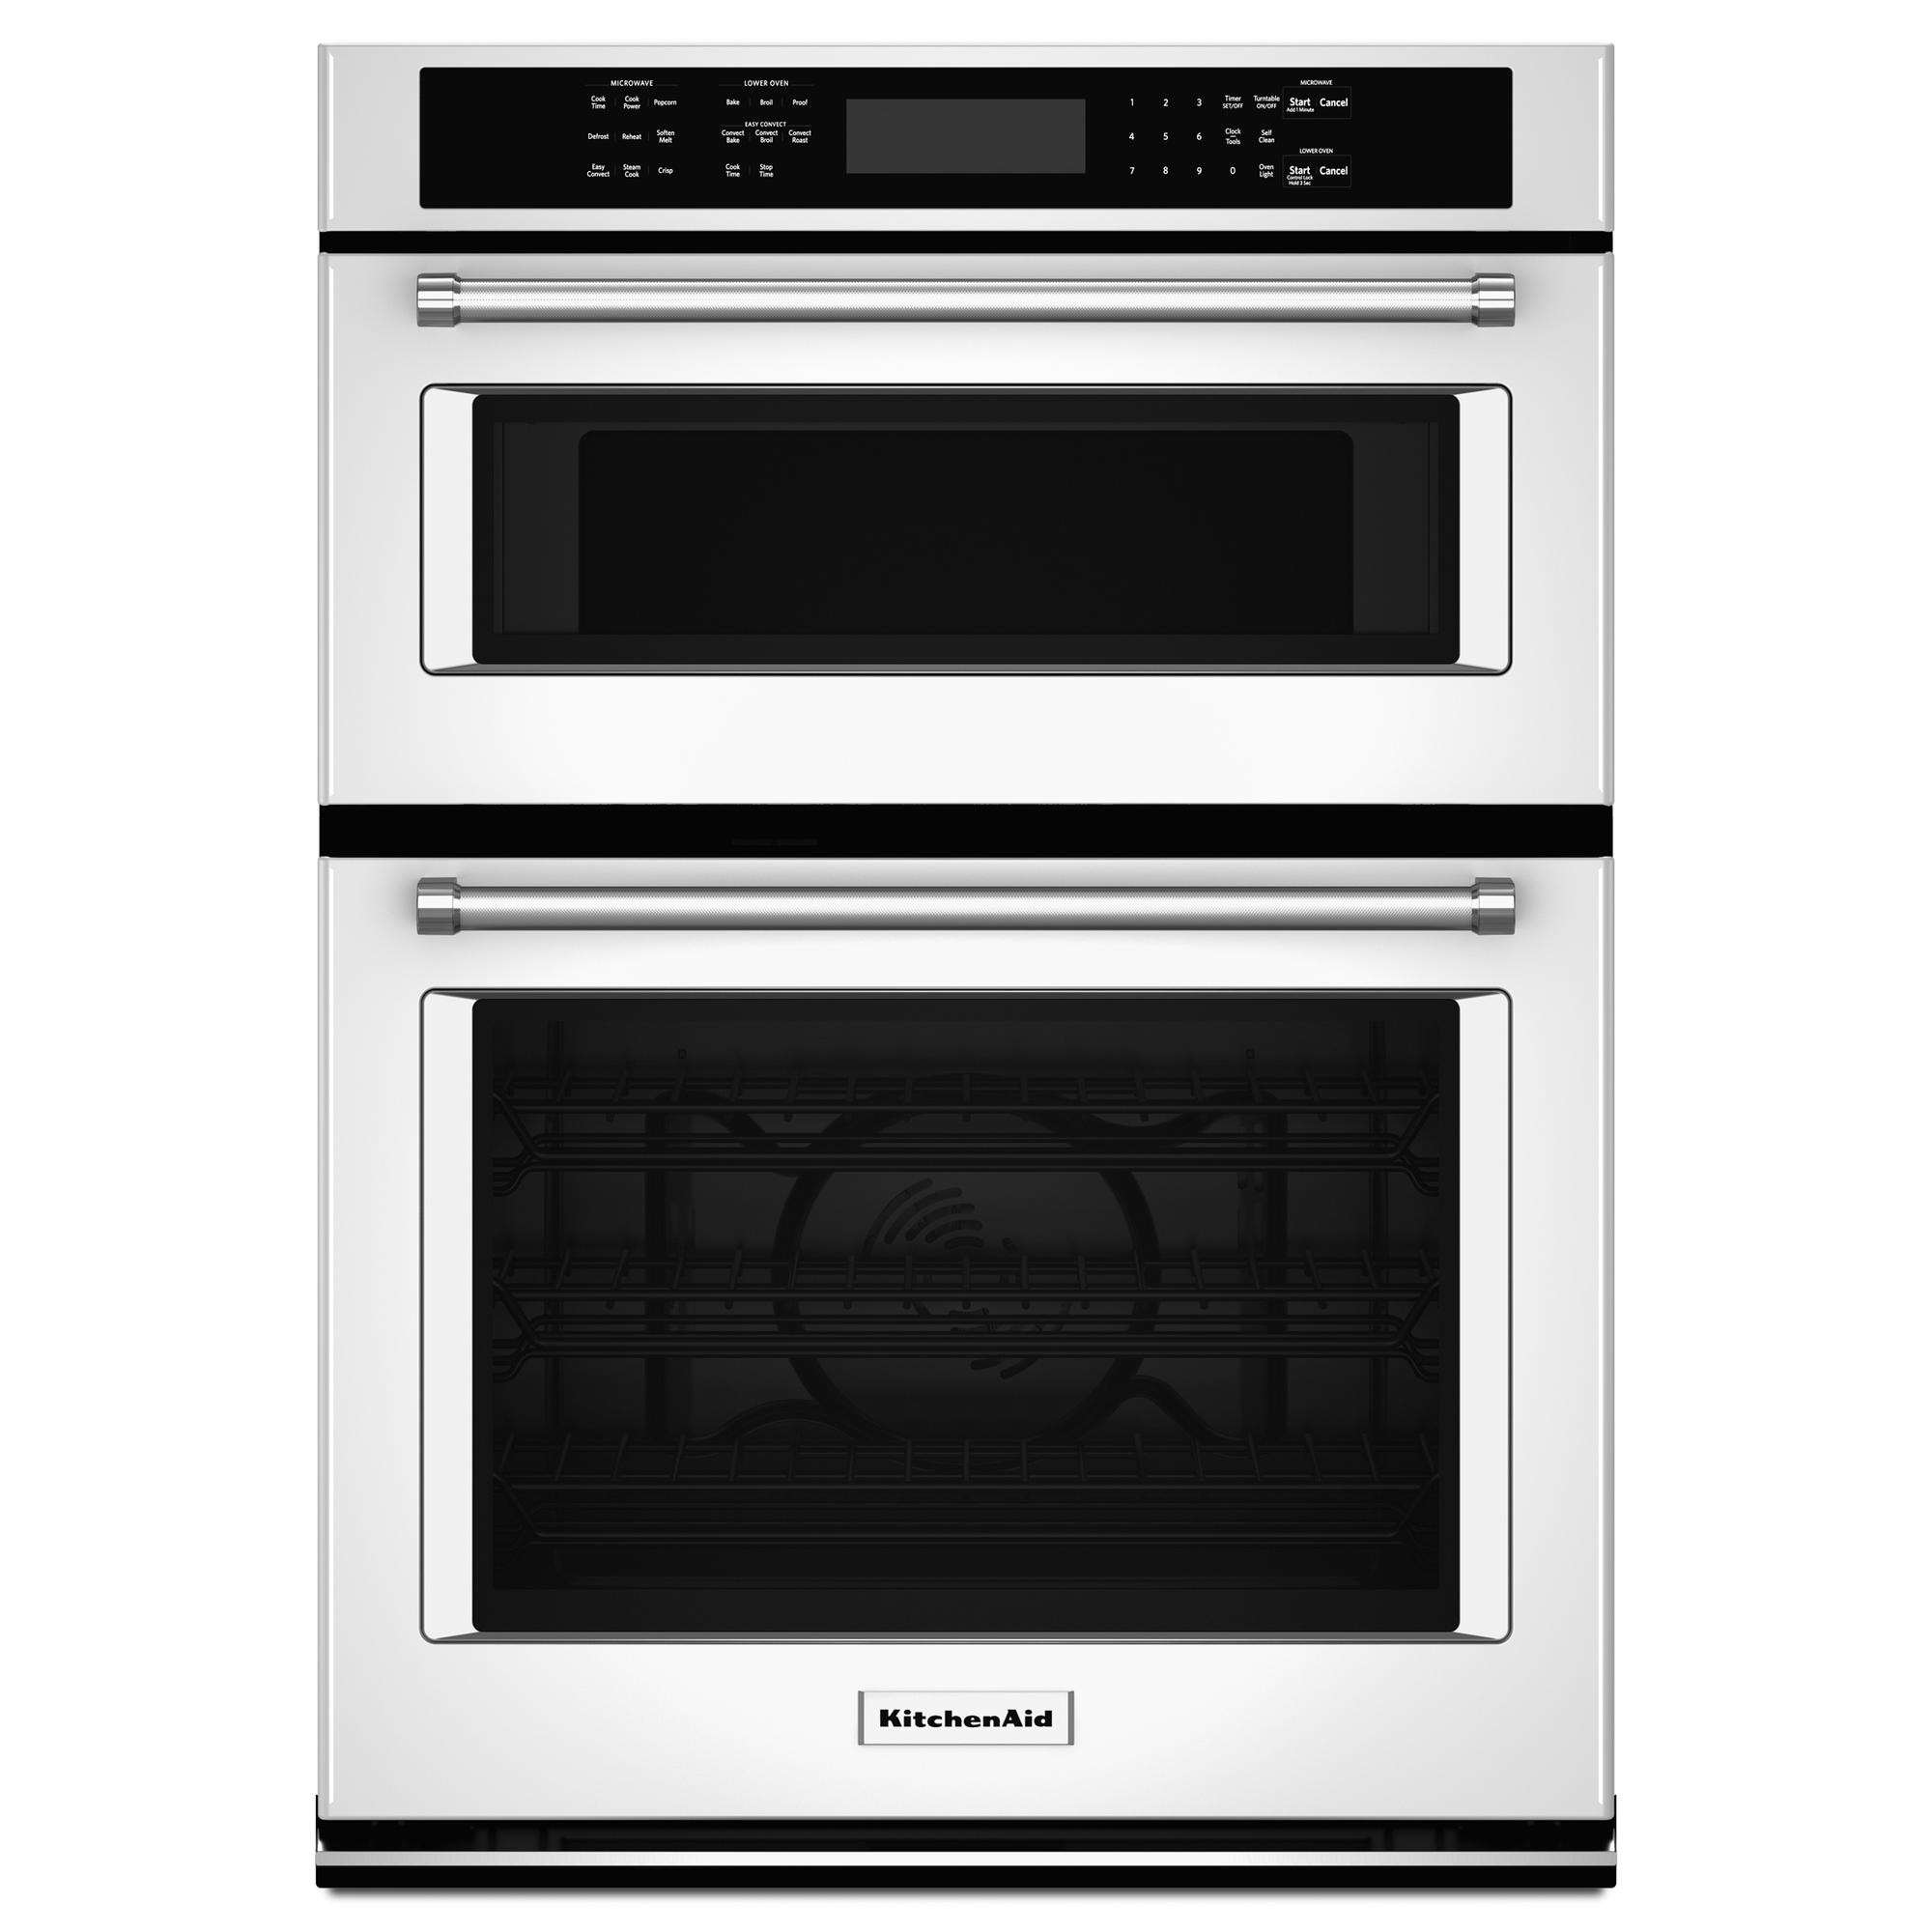 KitchenAid KOCE507EWH 27 Double Wall Oven w/Even-Heat™ True Convection - White